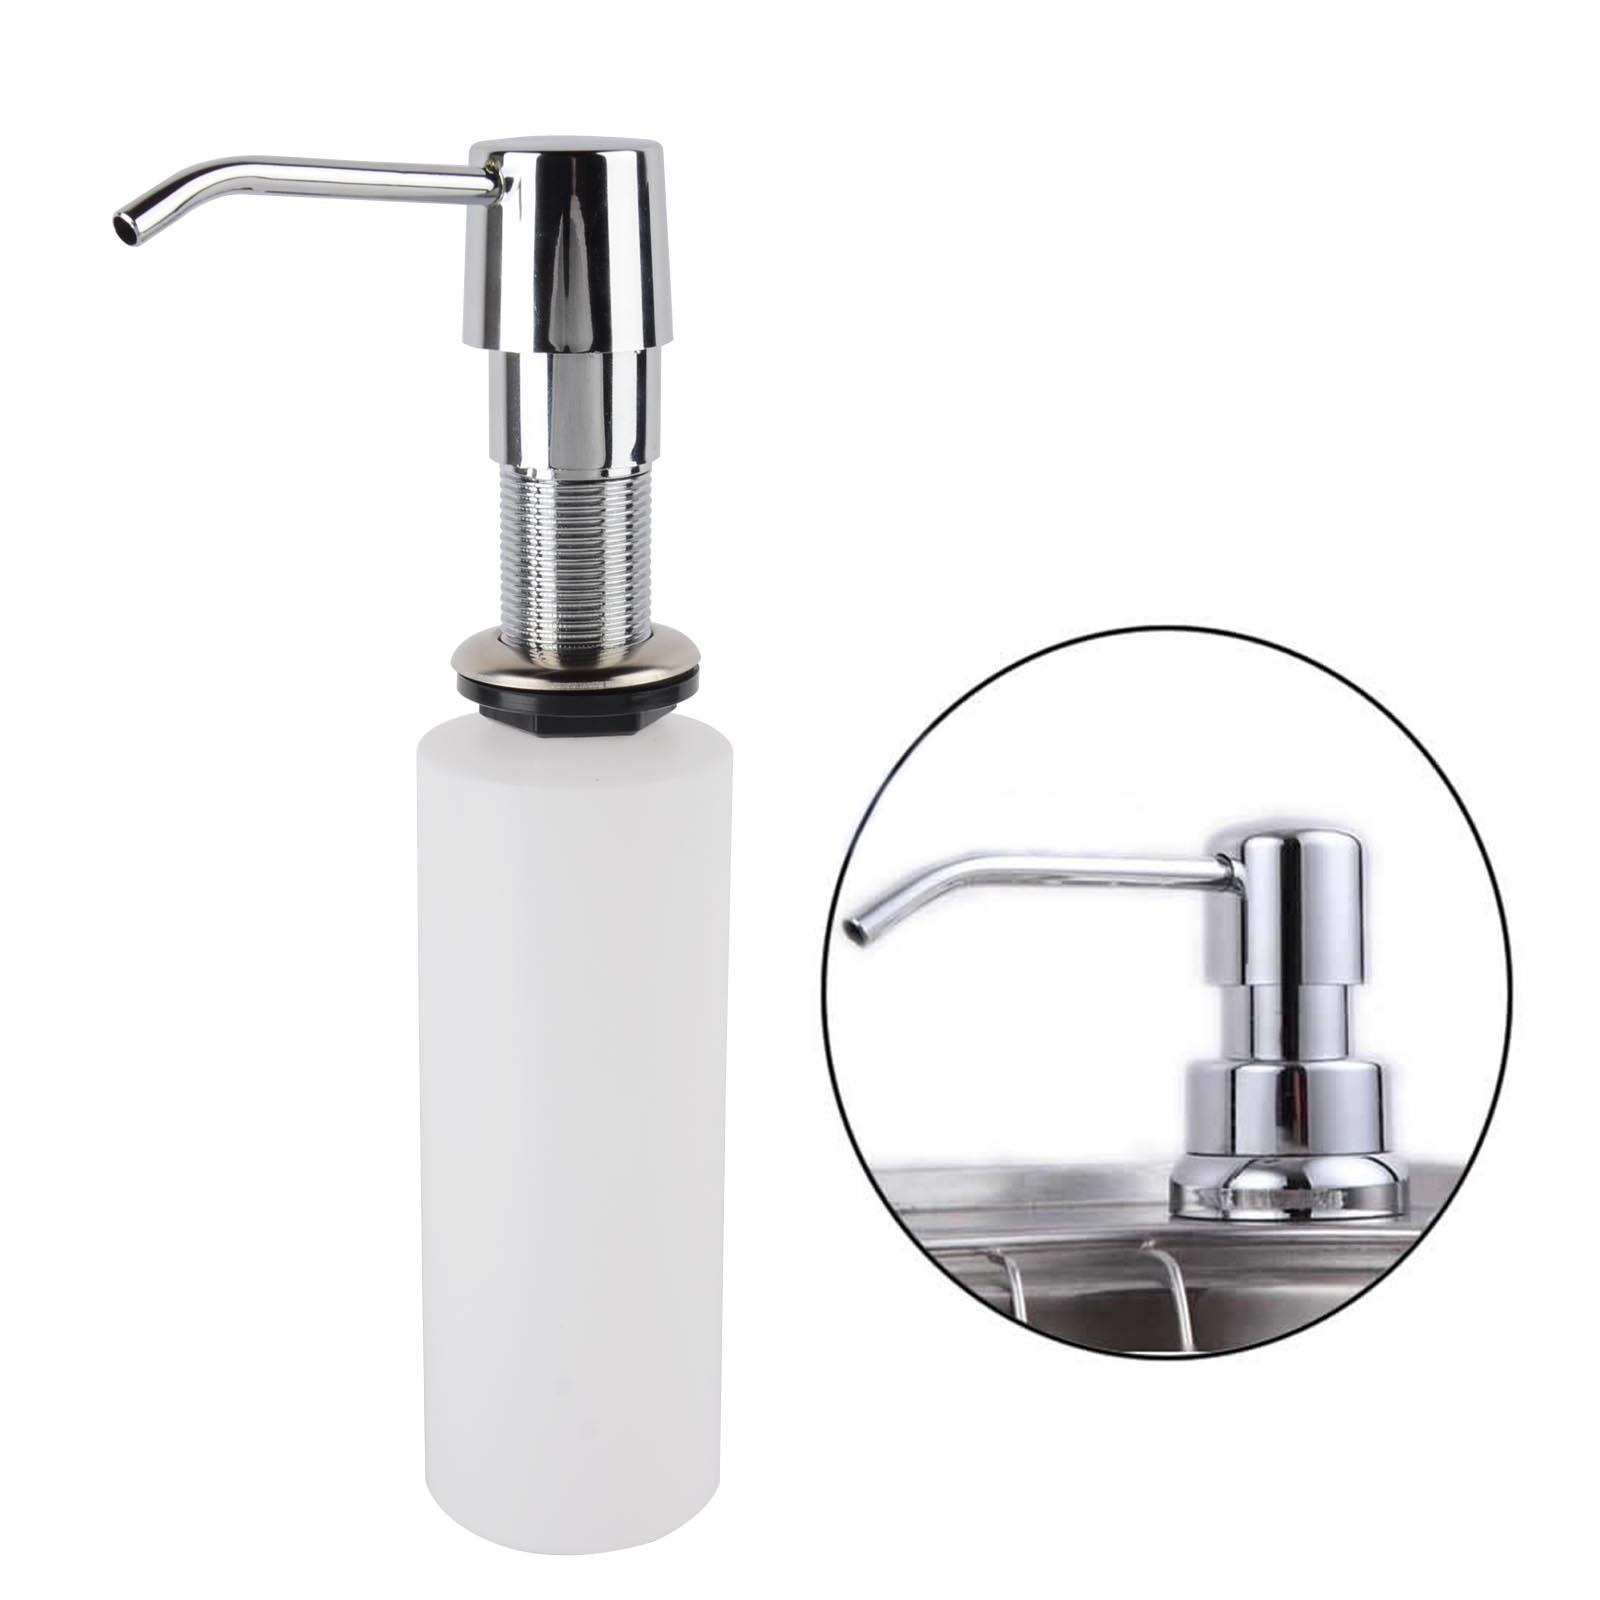 kitchen liquid dispenser where to buy faucets 2019 250ml plastic 43stainless steel 300ml bathroom